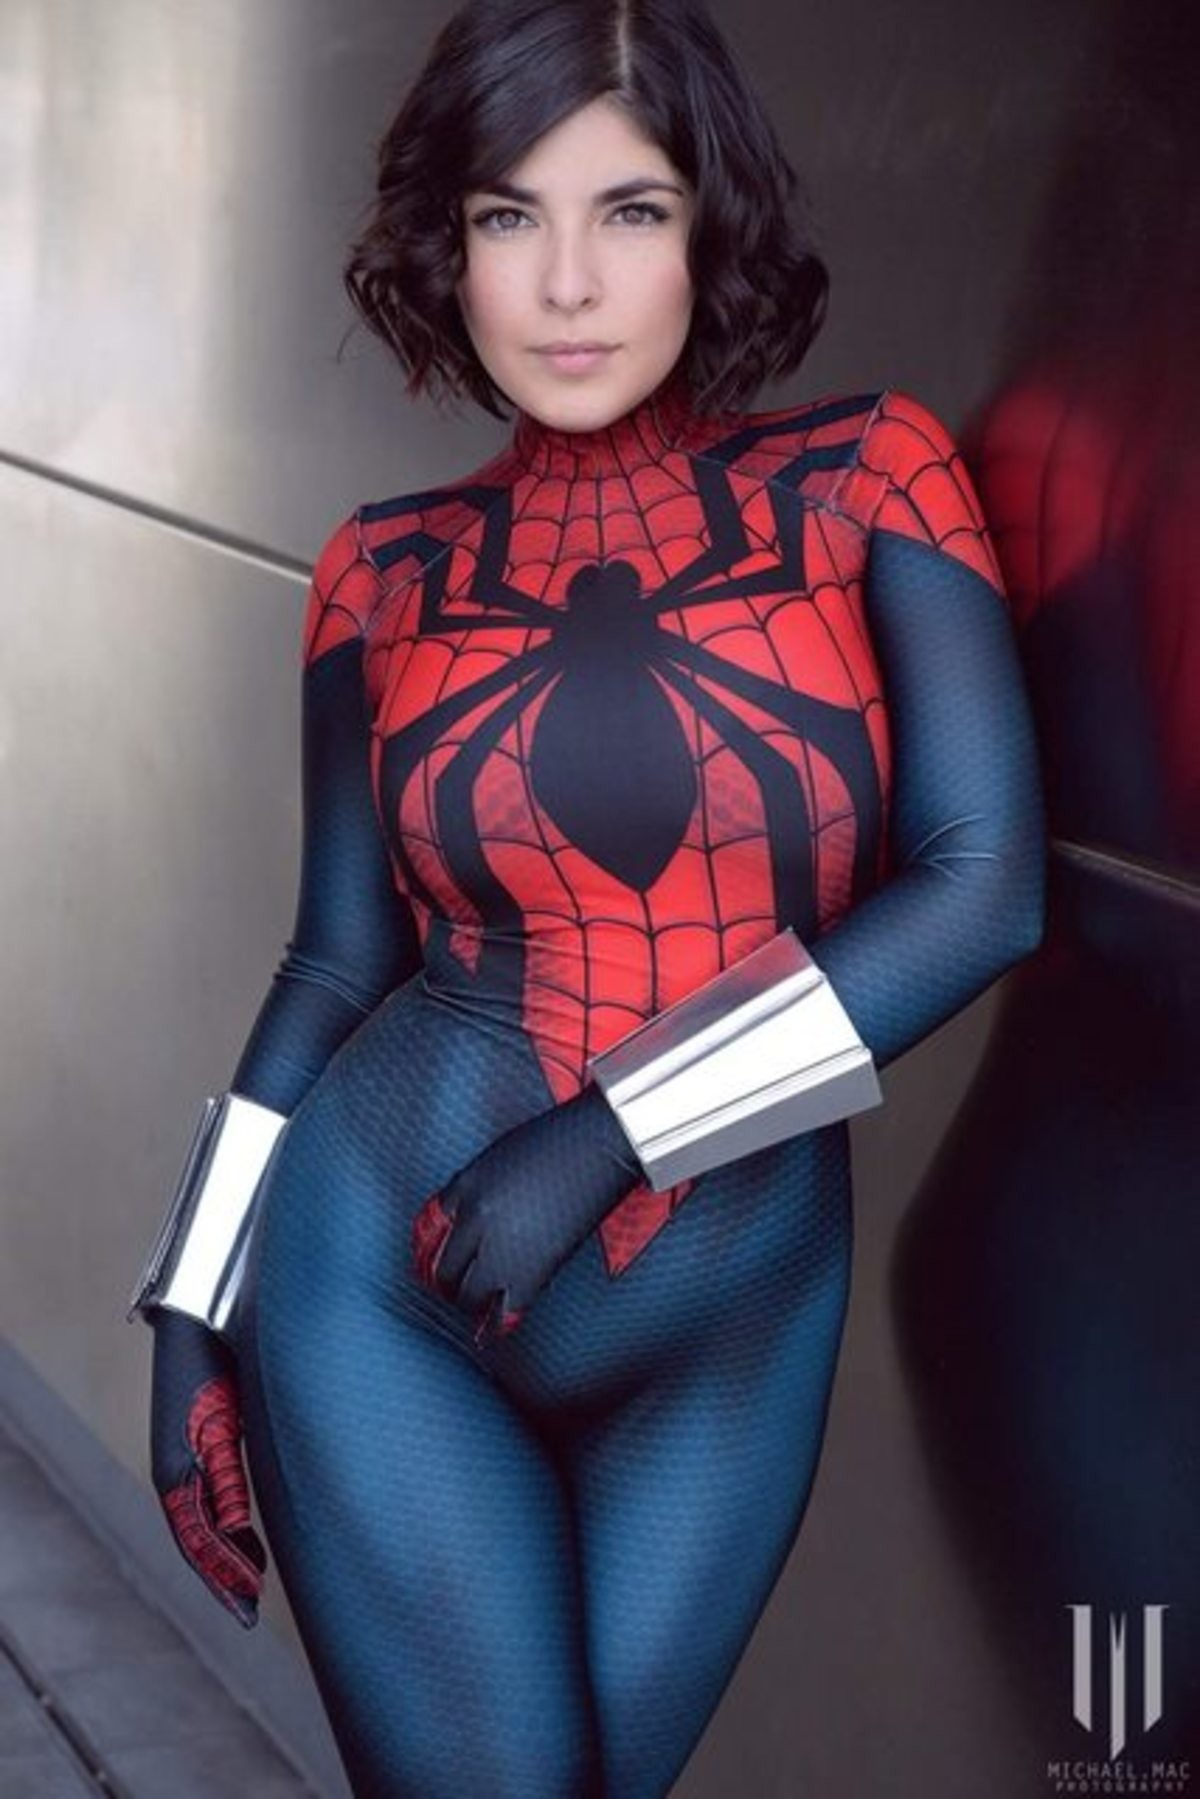 Spider-Woman. .. I'd shoot my web with her.